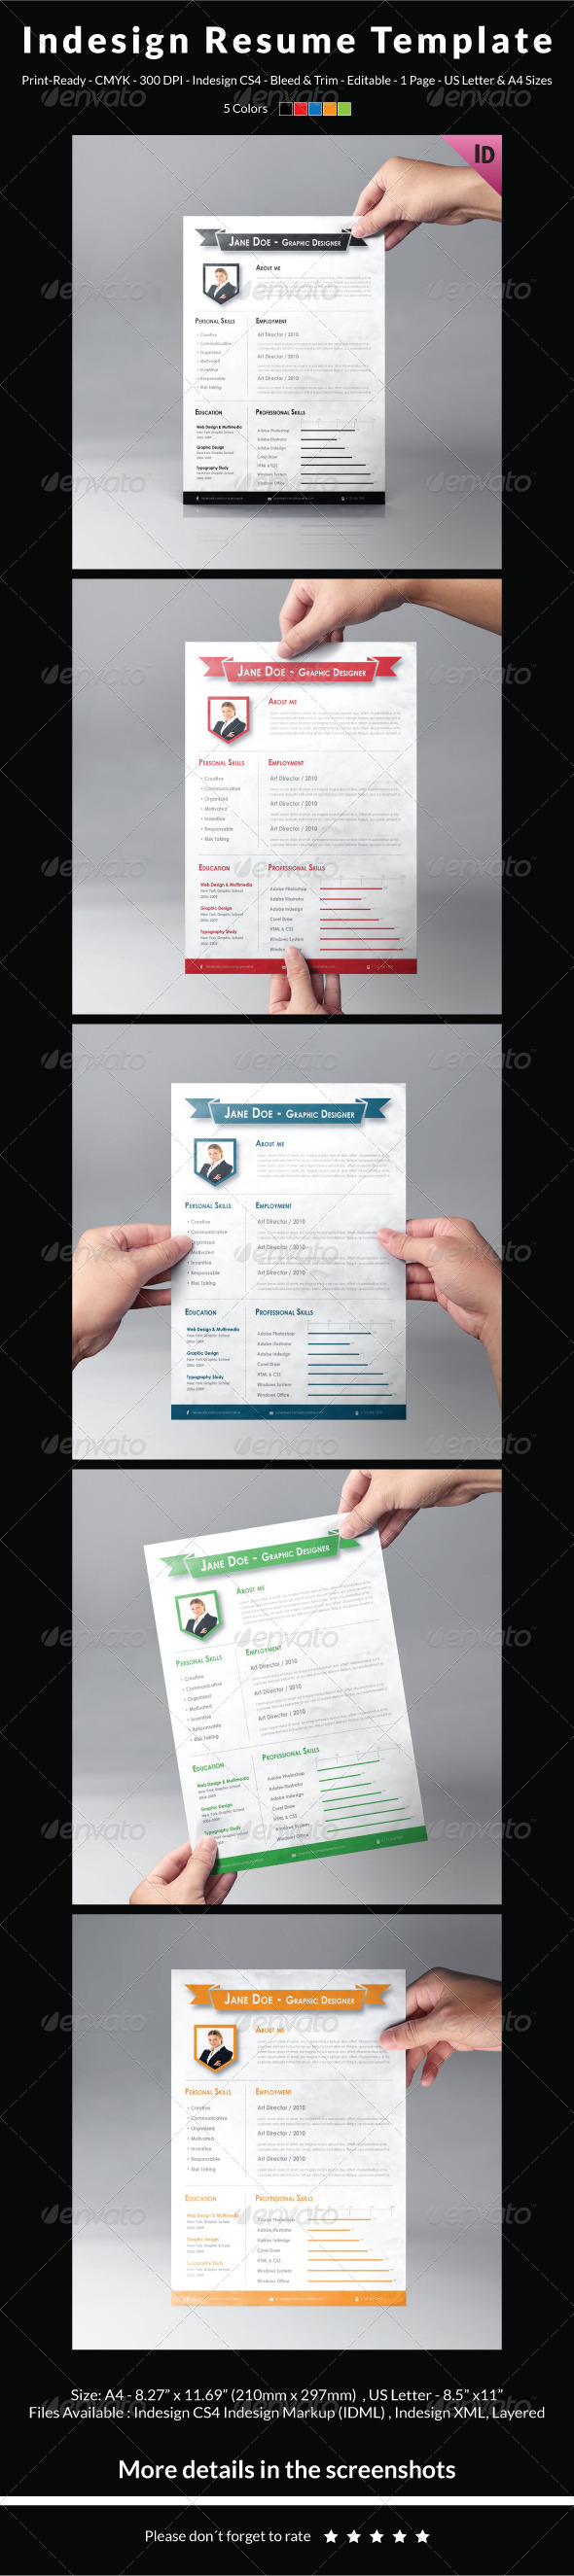 Indesign Resume Template By CarlosFernando  Graphicriver